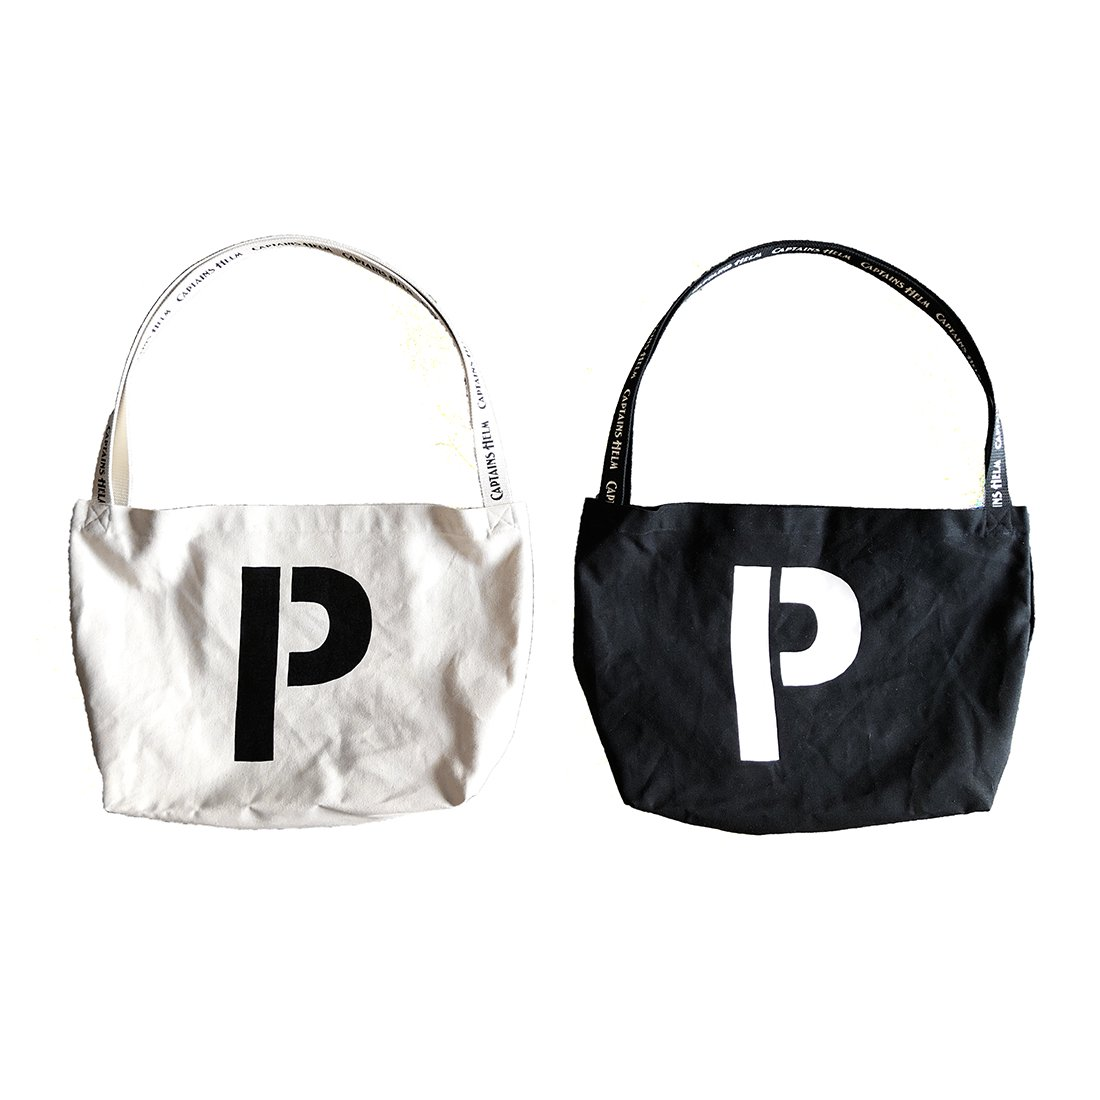 PIPPEN STORE × CAPTAINS HELM #DAILY BEACH BAG